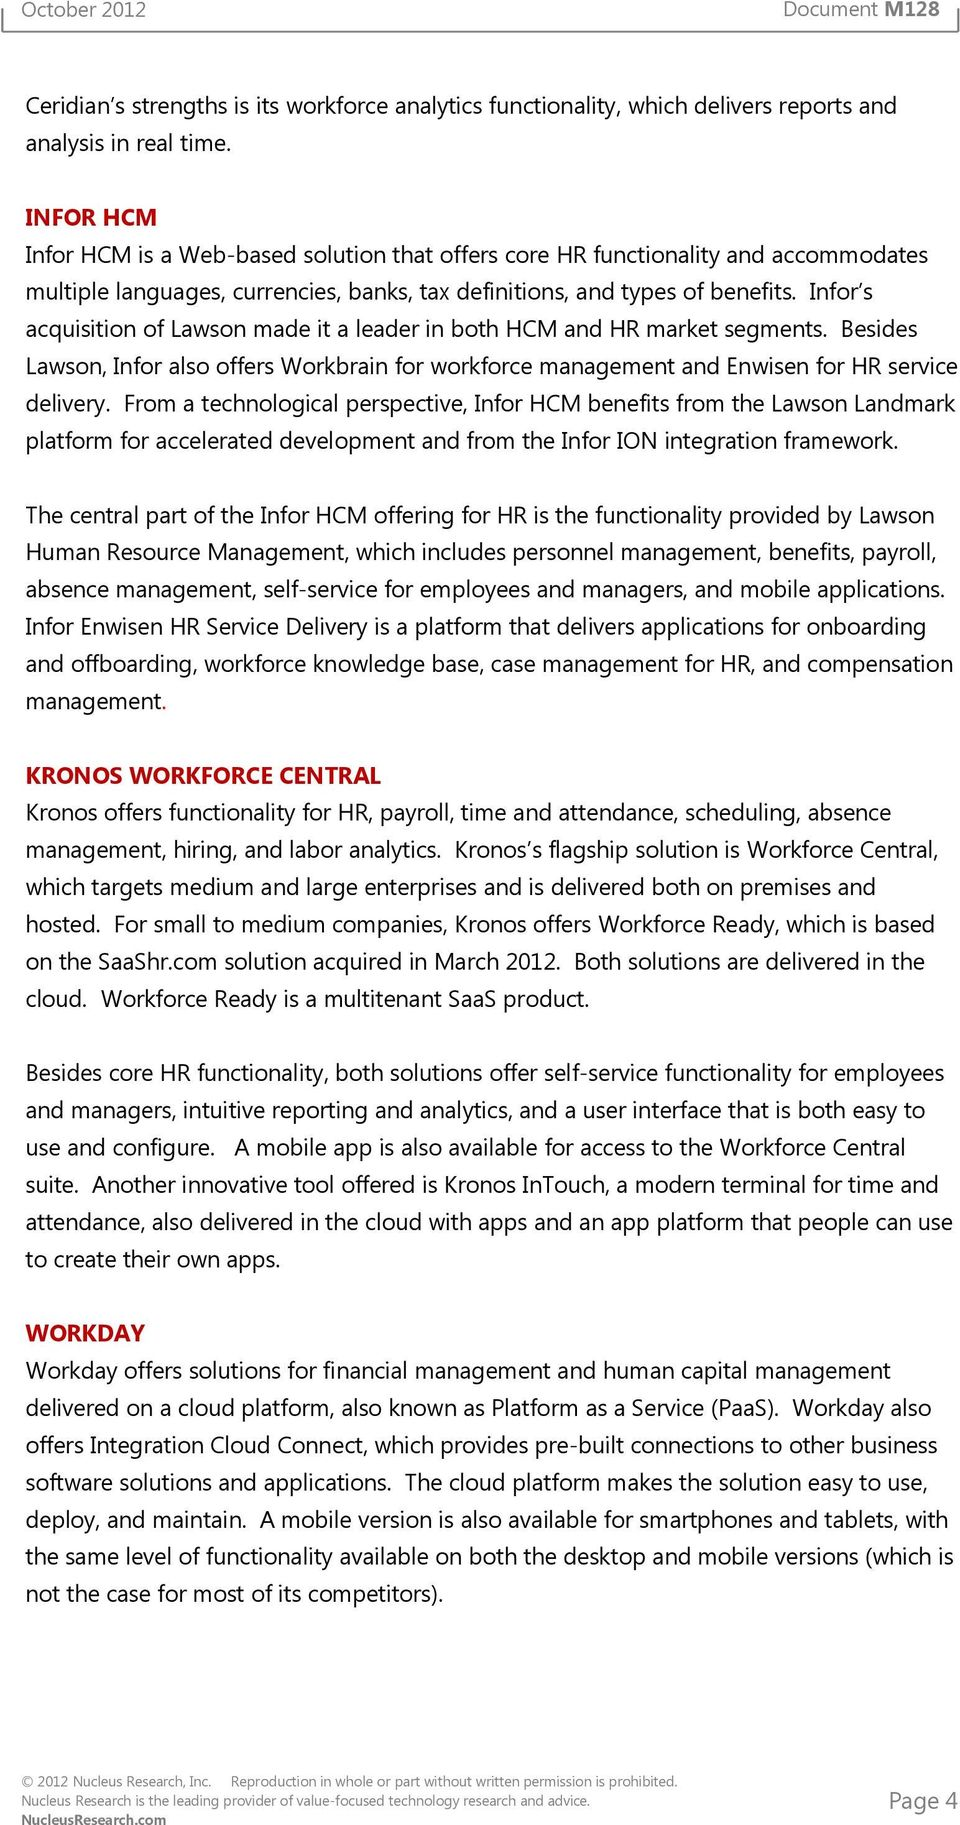 Infor s acquisition of Lawson made it a leader in both HCM and HR market segments. Besides Lawson, Infor also offers Workbrain for workforce management and Enwisen for HR service delivery.